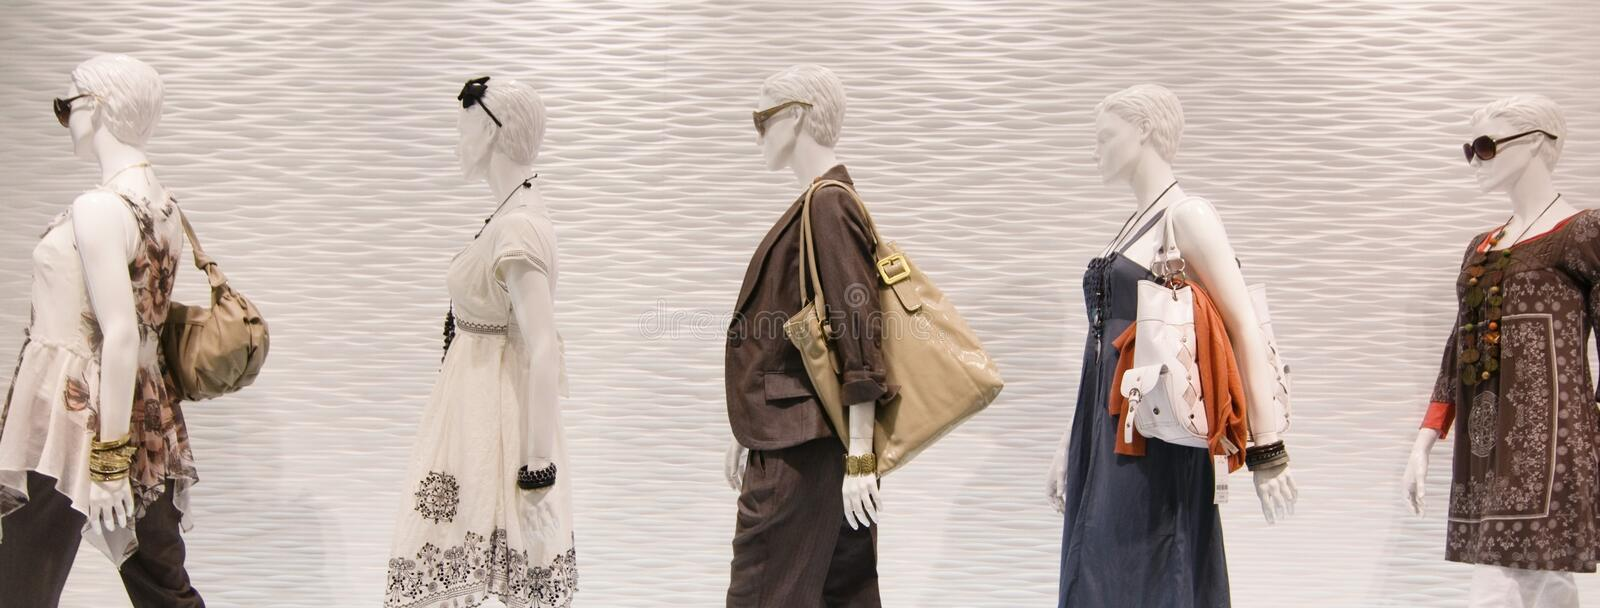 Fashion mannequins in window stock photography